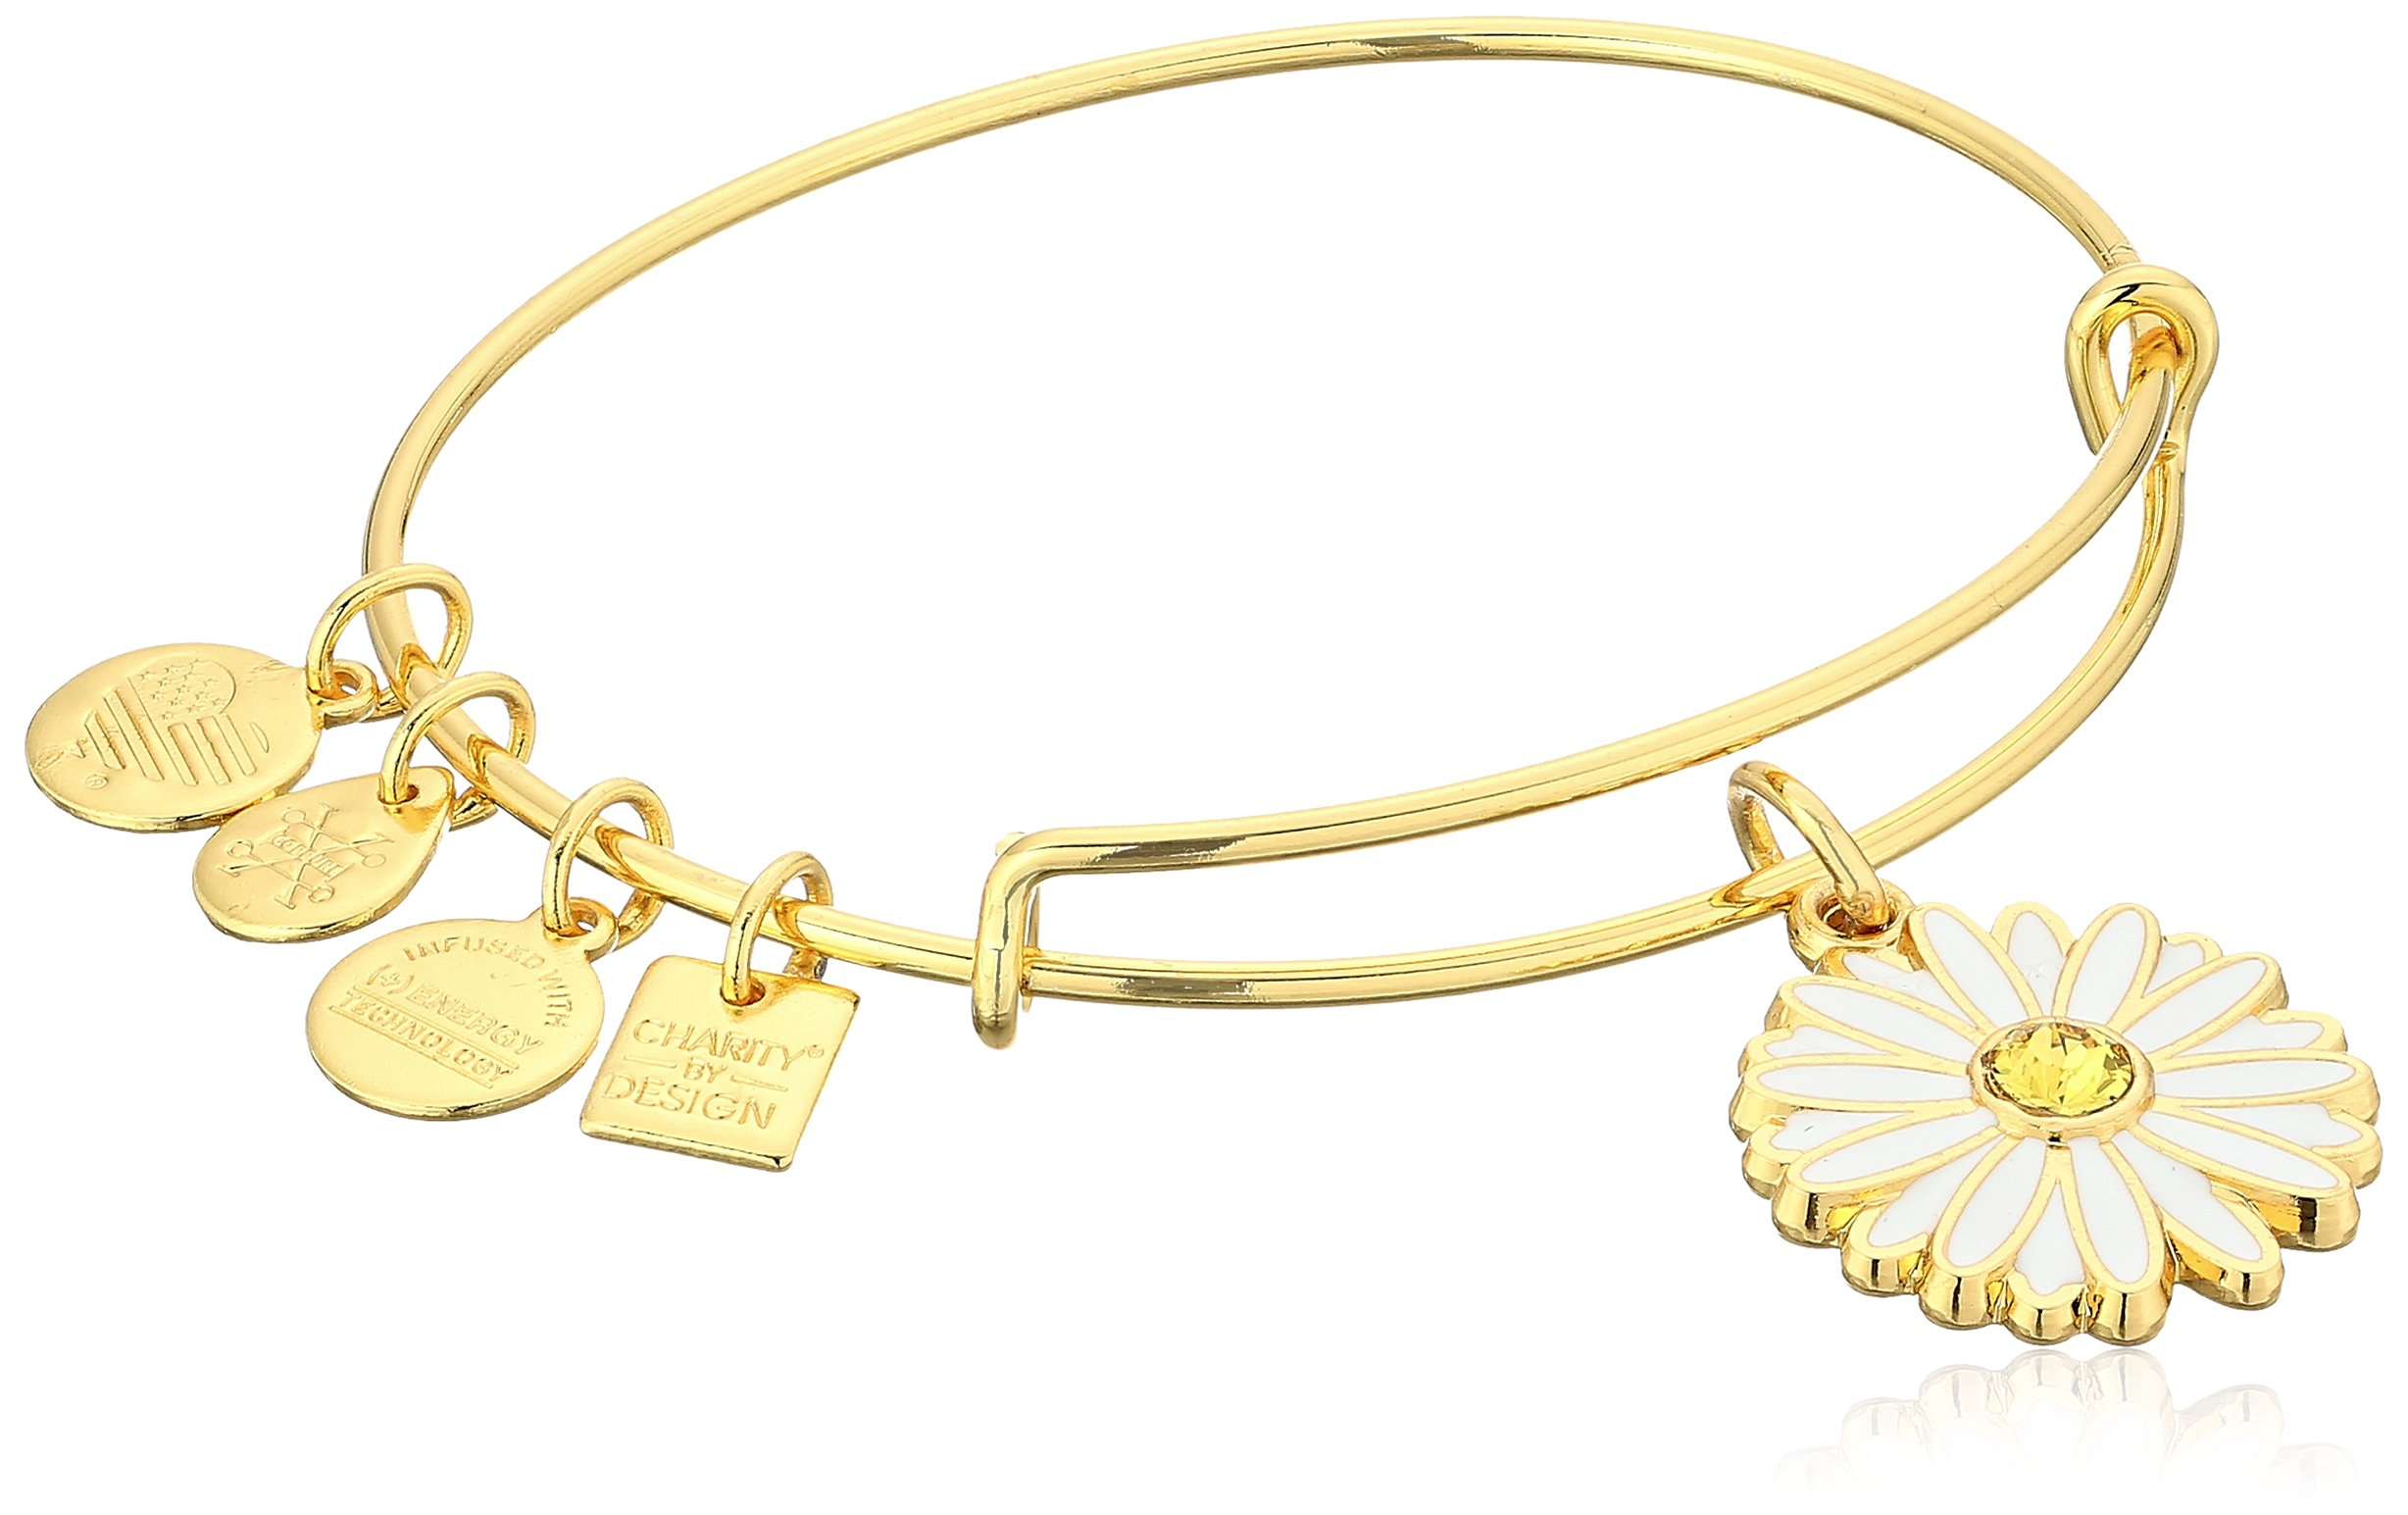 Alex and Ani Charity by Design, Daisy Shiny Gold Bangle Bracelet by Alex and Ani